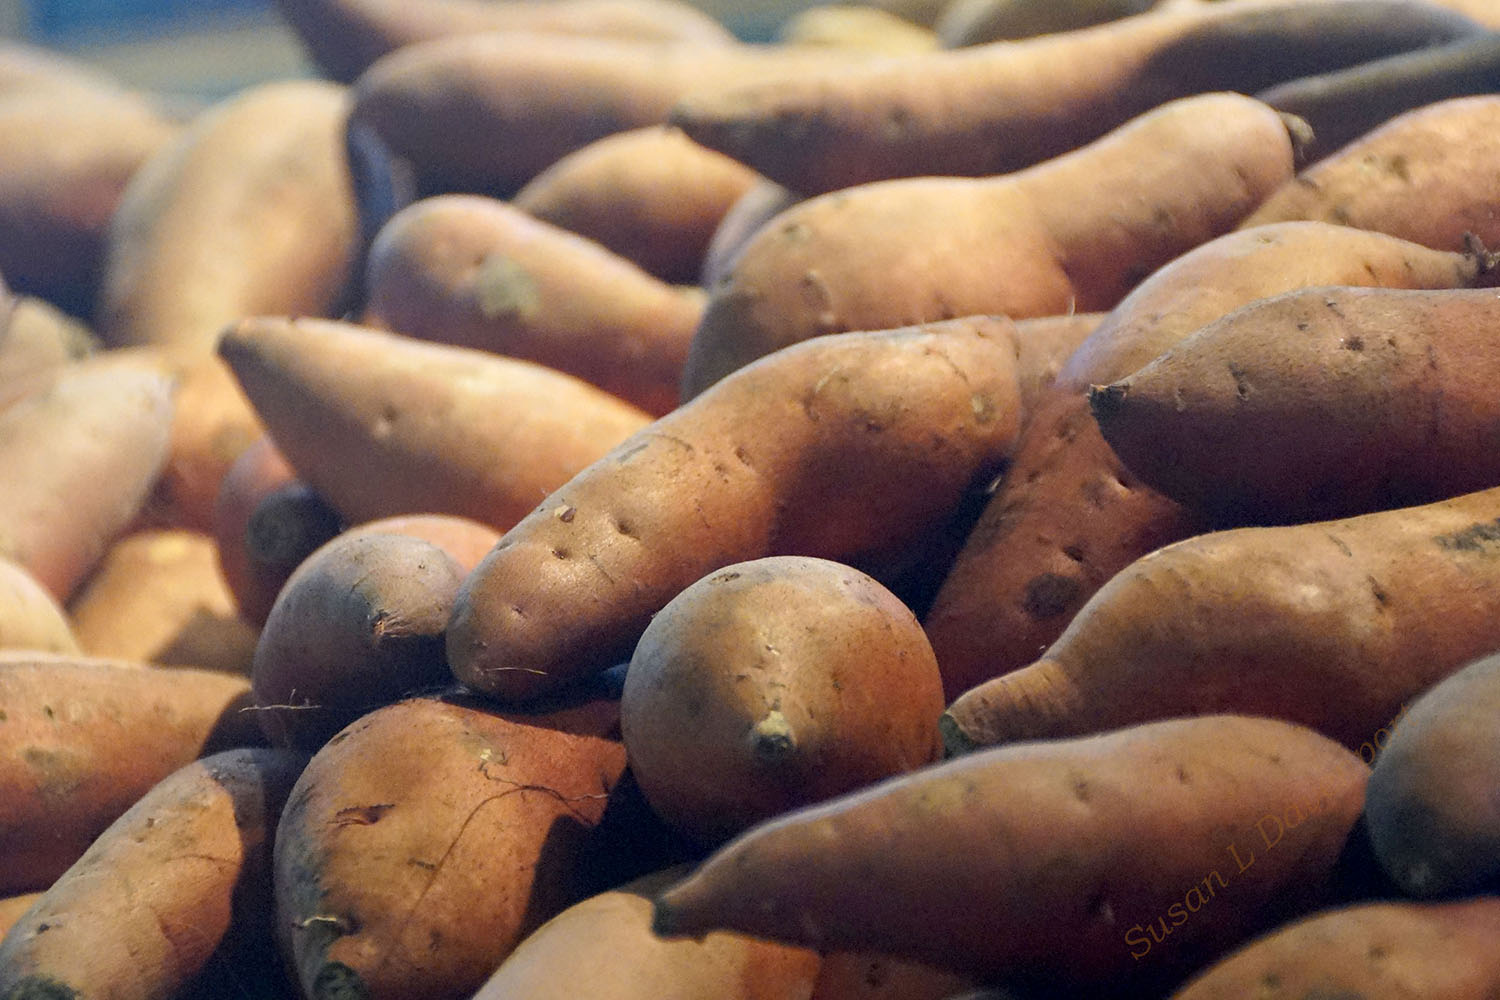 Sweet Potatoes for Less Impact on Blood Sugar - Photo by Susan L. Davenport